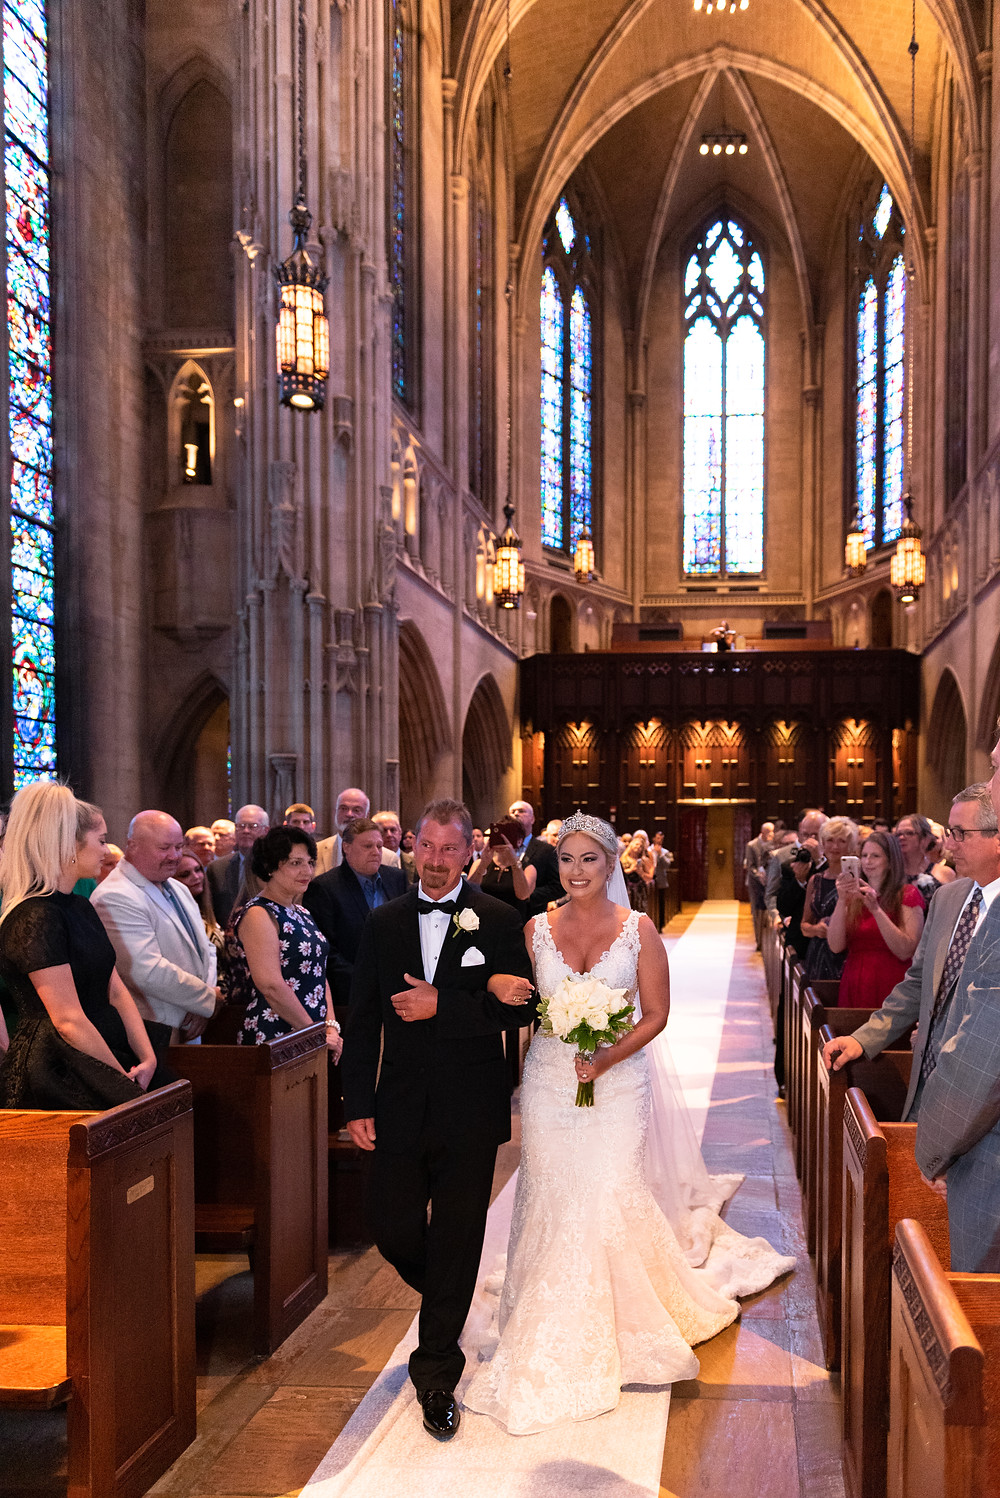 Bride's father walking her down the aisle at Heinz Chapel